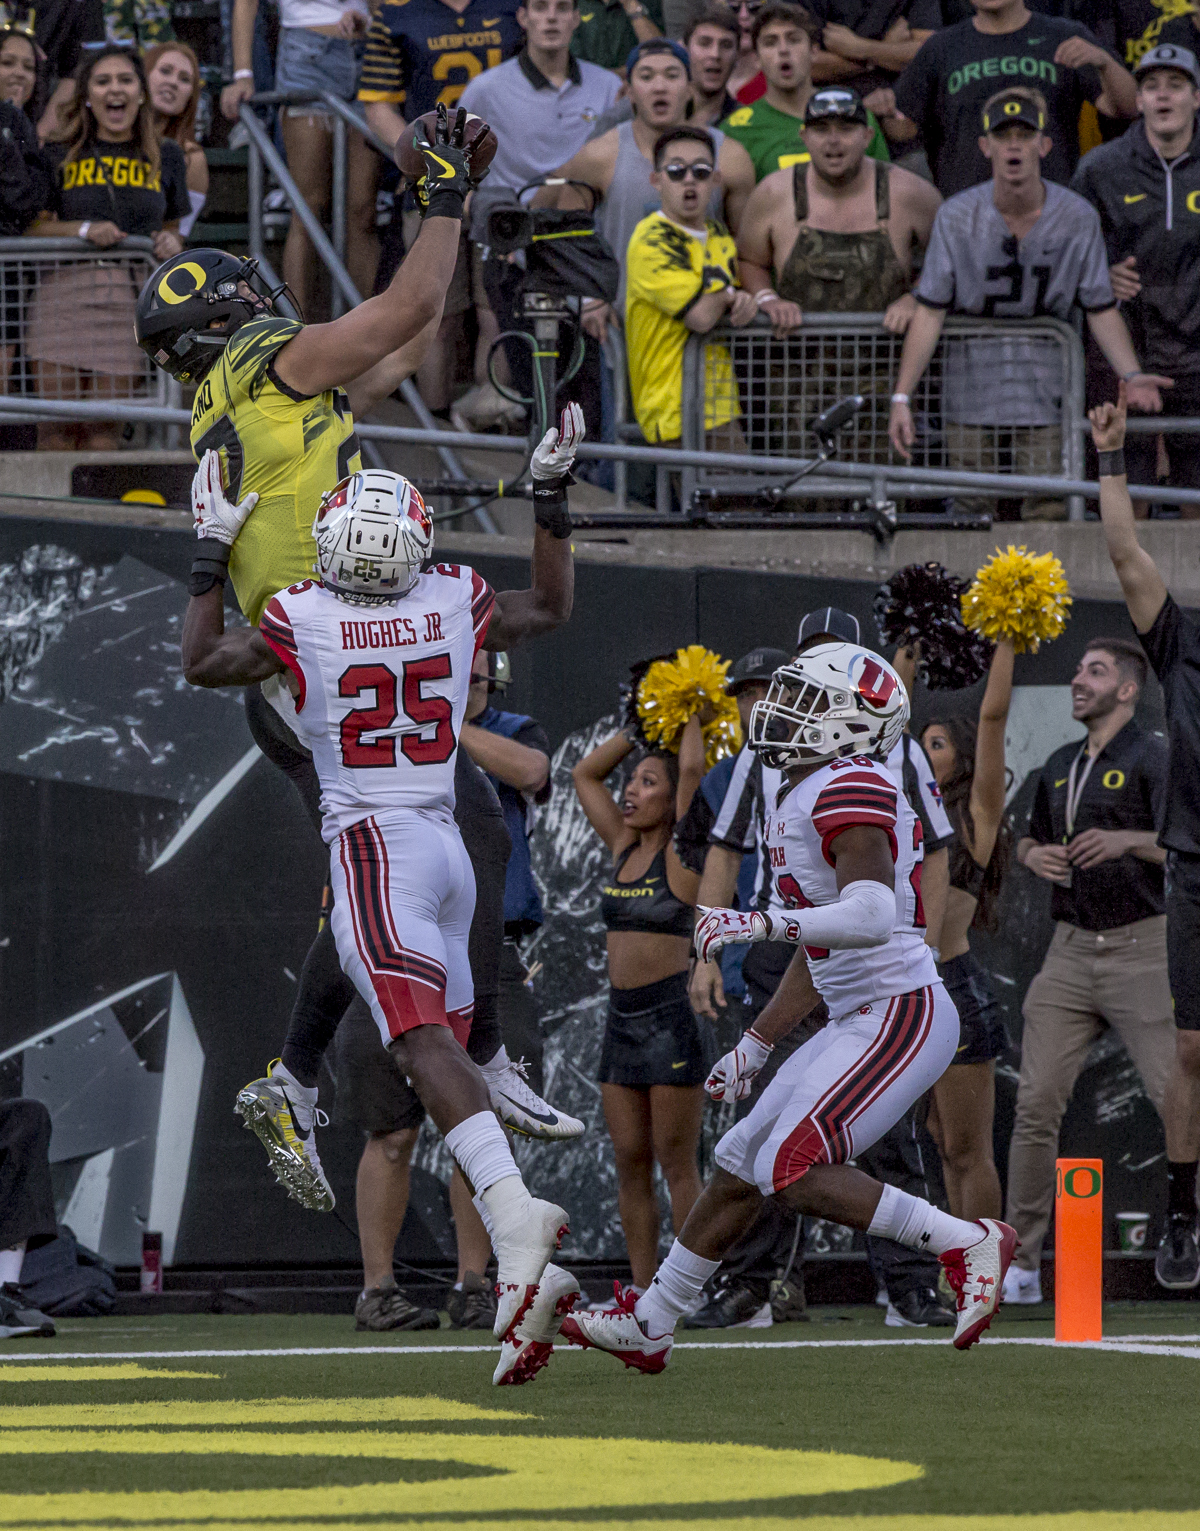 Oregon tight end Jacob Breeland (#27) catches a pass in the end zone. The Oregon Ducks defeated the Utah Utes 41 to 20 during Oregon's homecoming game at Autzen Stadium on Saturday, October 28, 2017. Photo by Ben Lonergan, Oregon News Lab